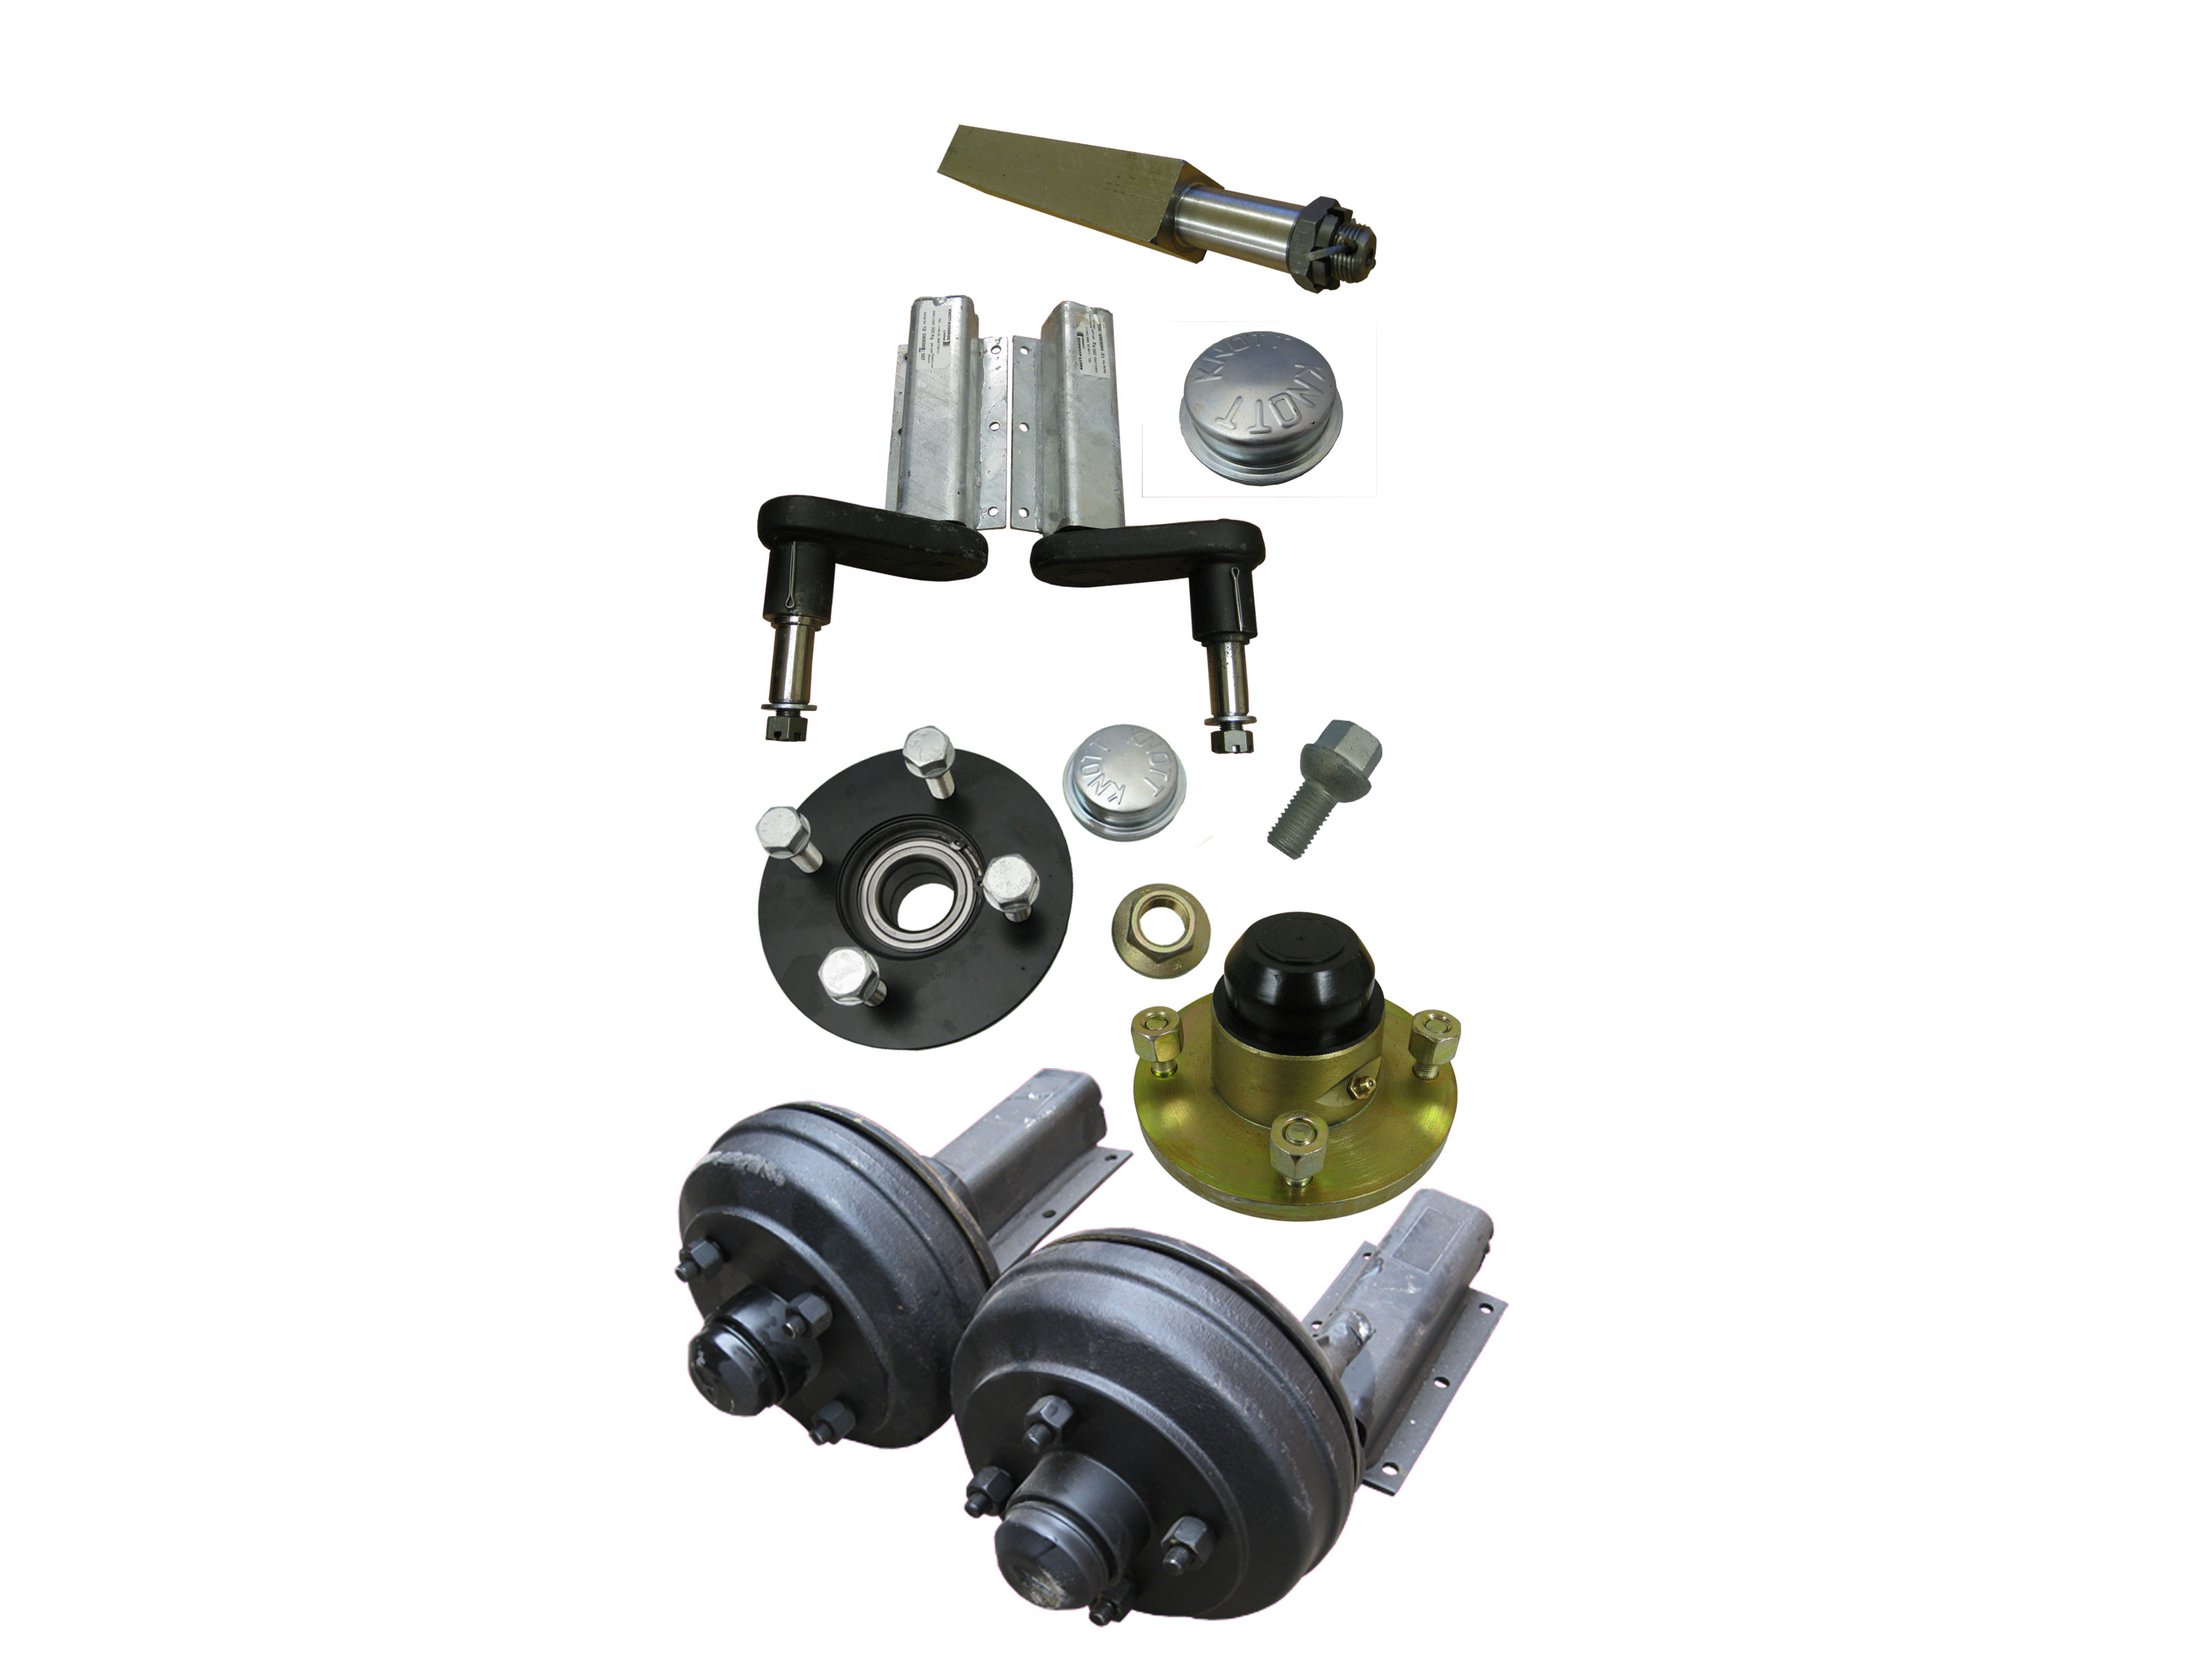 Suspension and parts